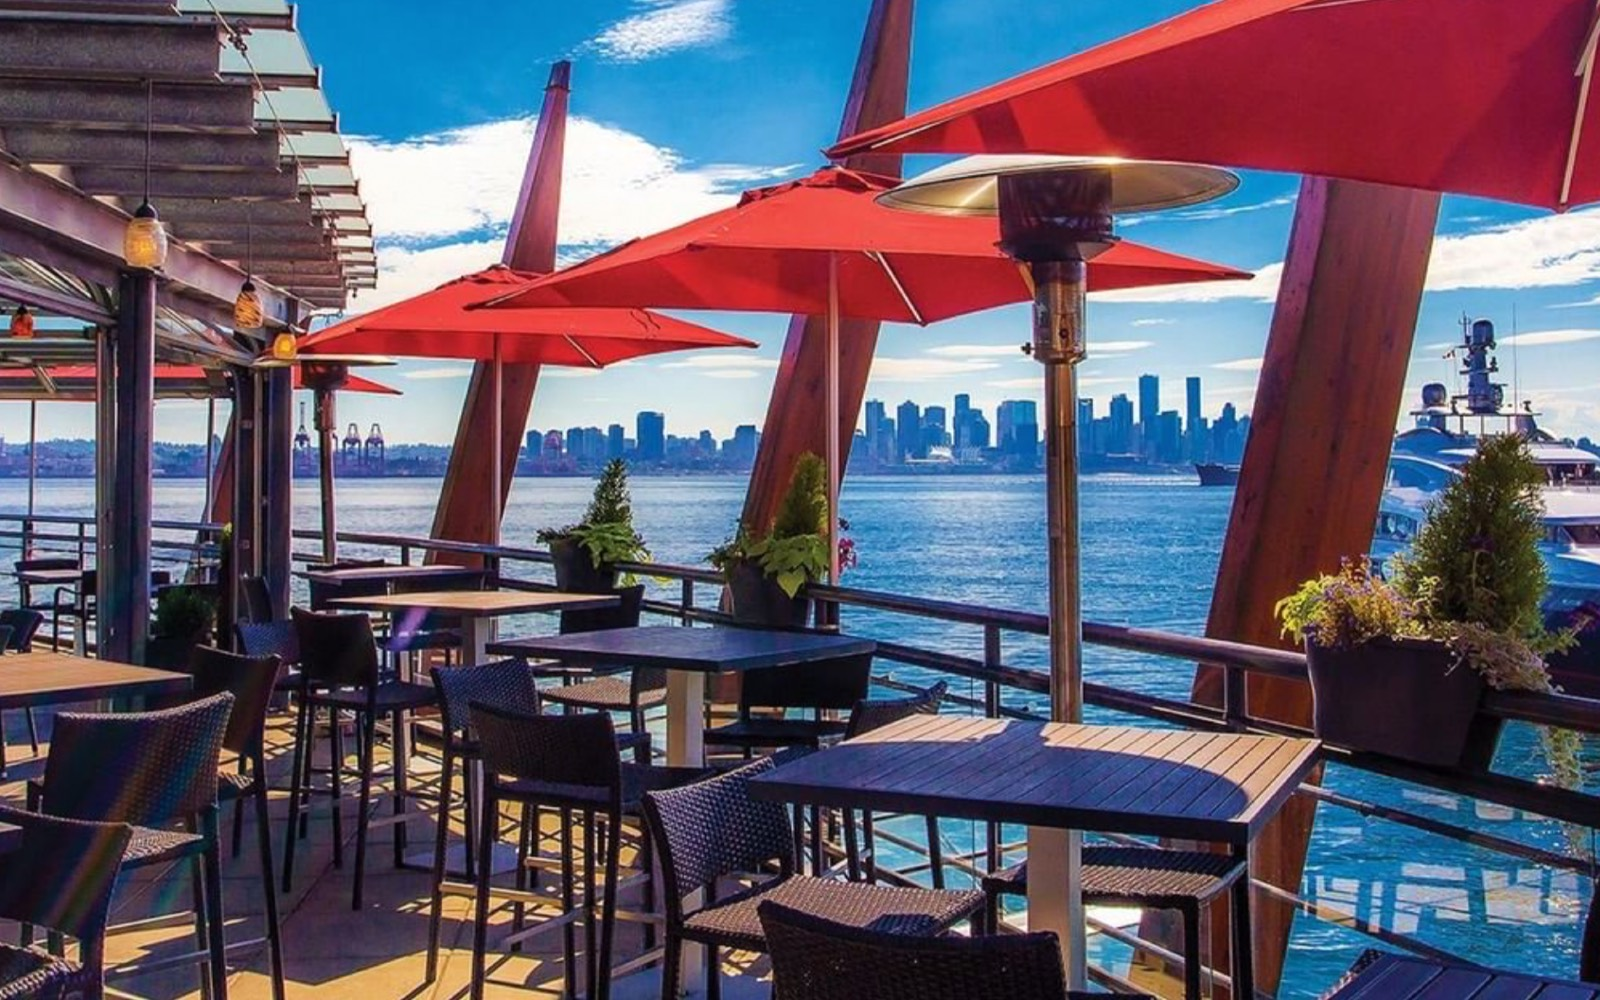 The patio at Pier 7, North Vancouver